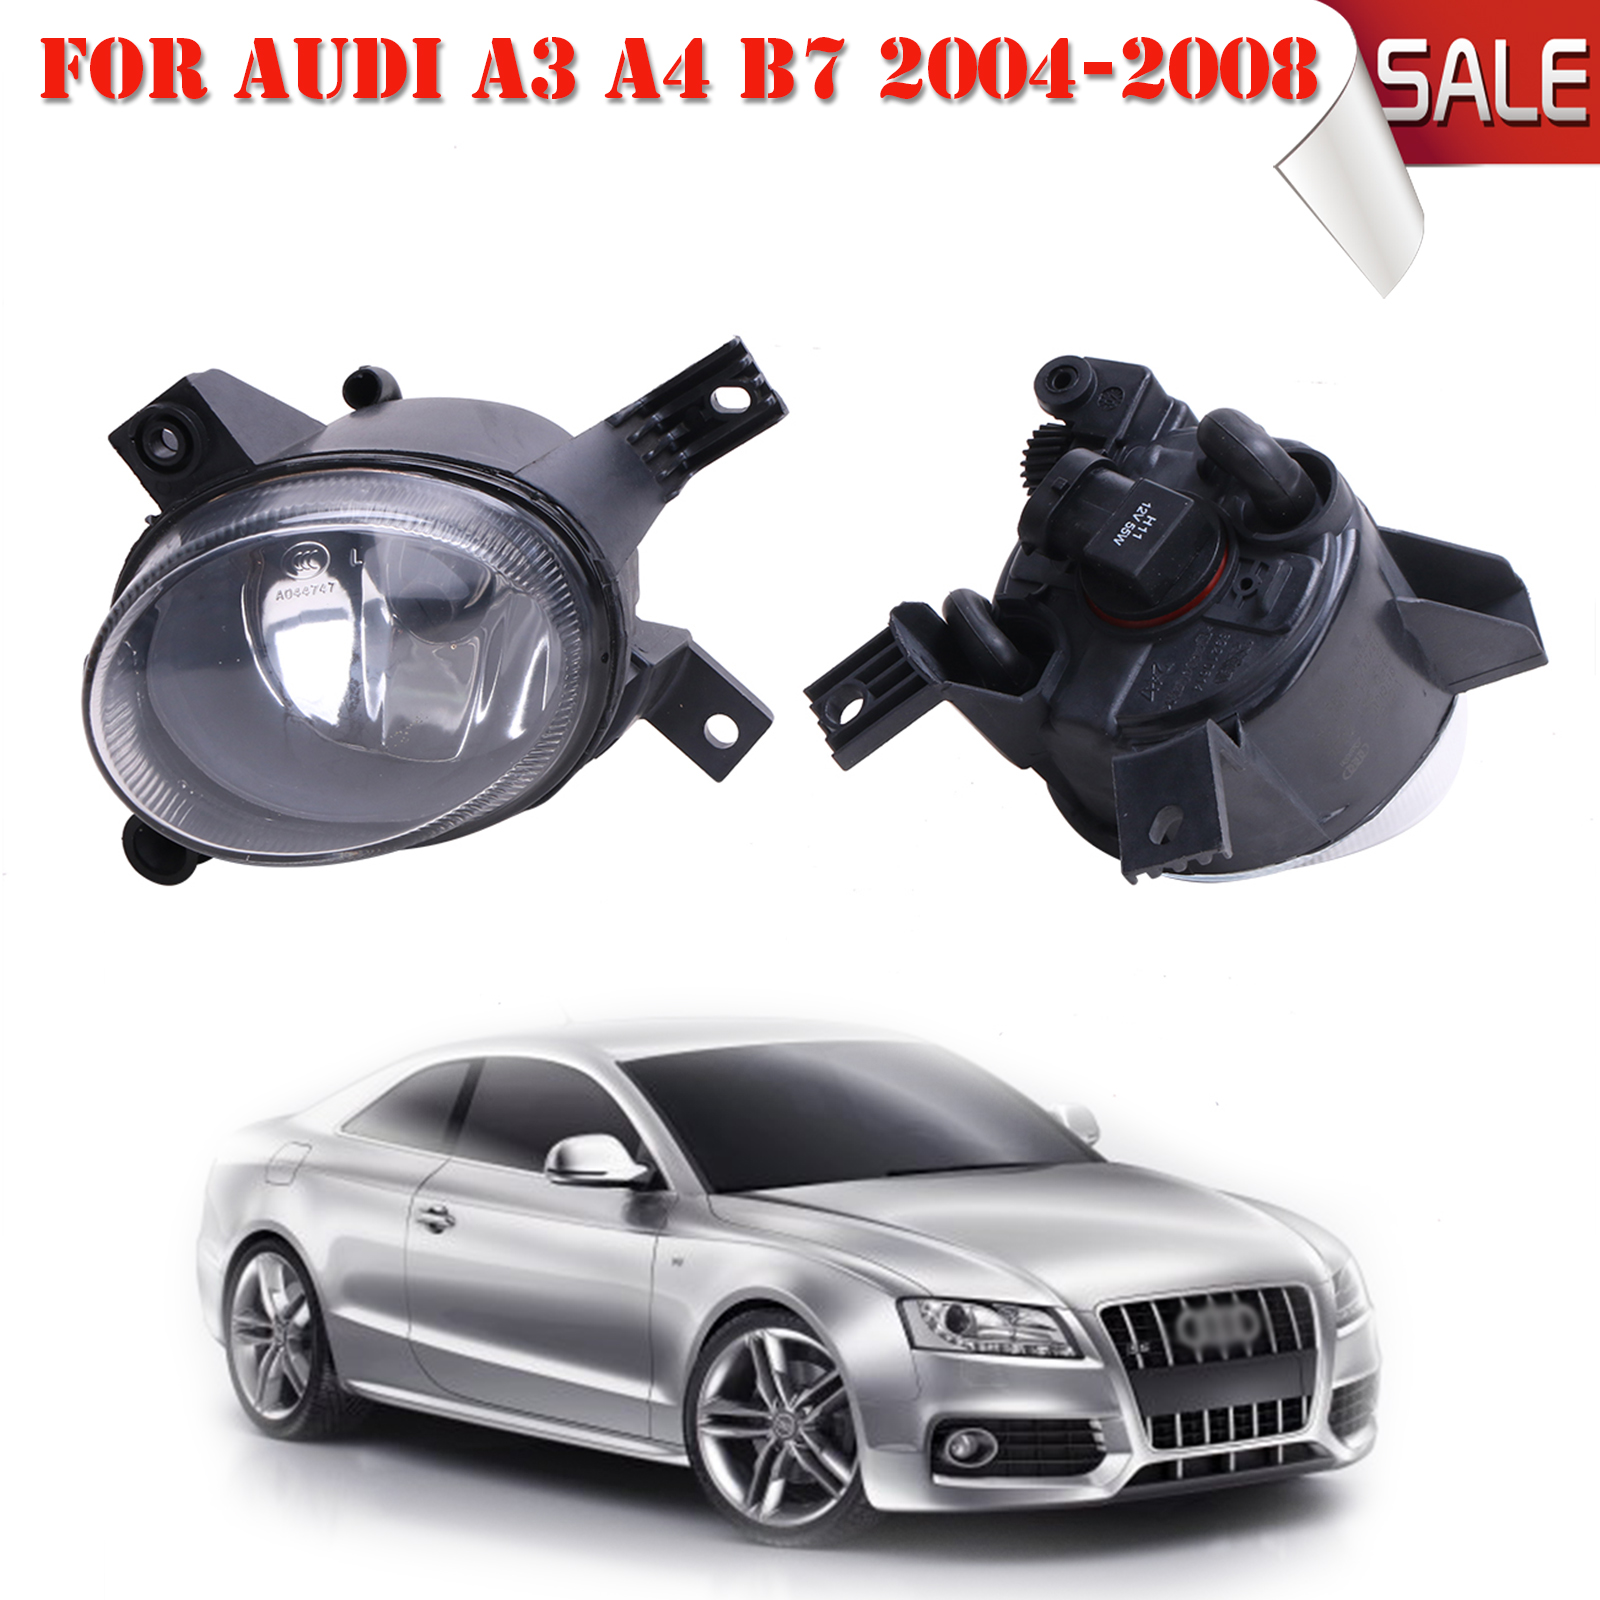 For audi a3 a4 b7 2004 2008 front fog light lamps left right oem 8e0941700 8e0941699 car accessory p318